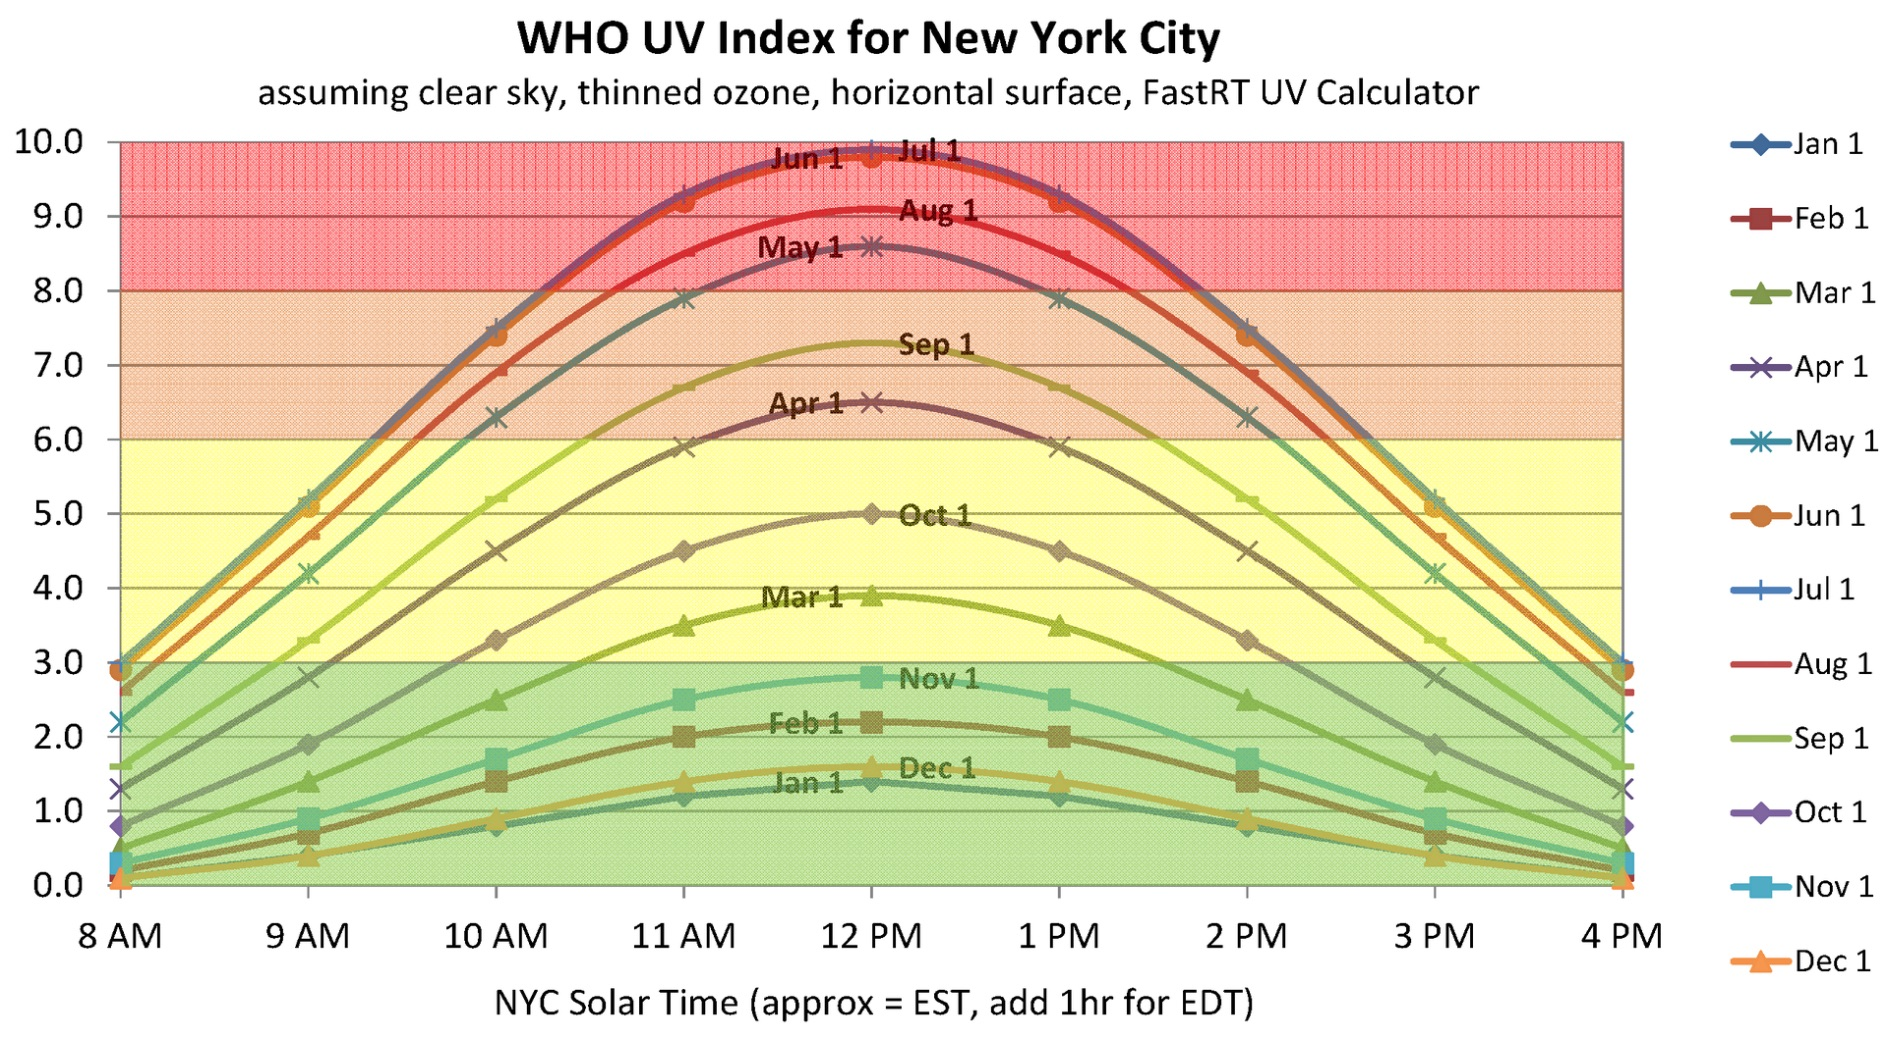 WHO UV Index for New York City